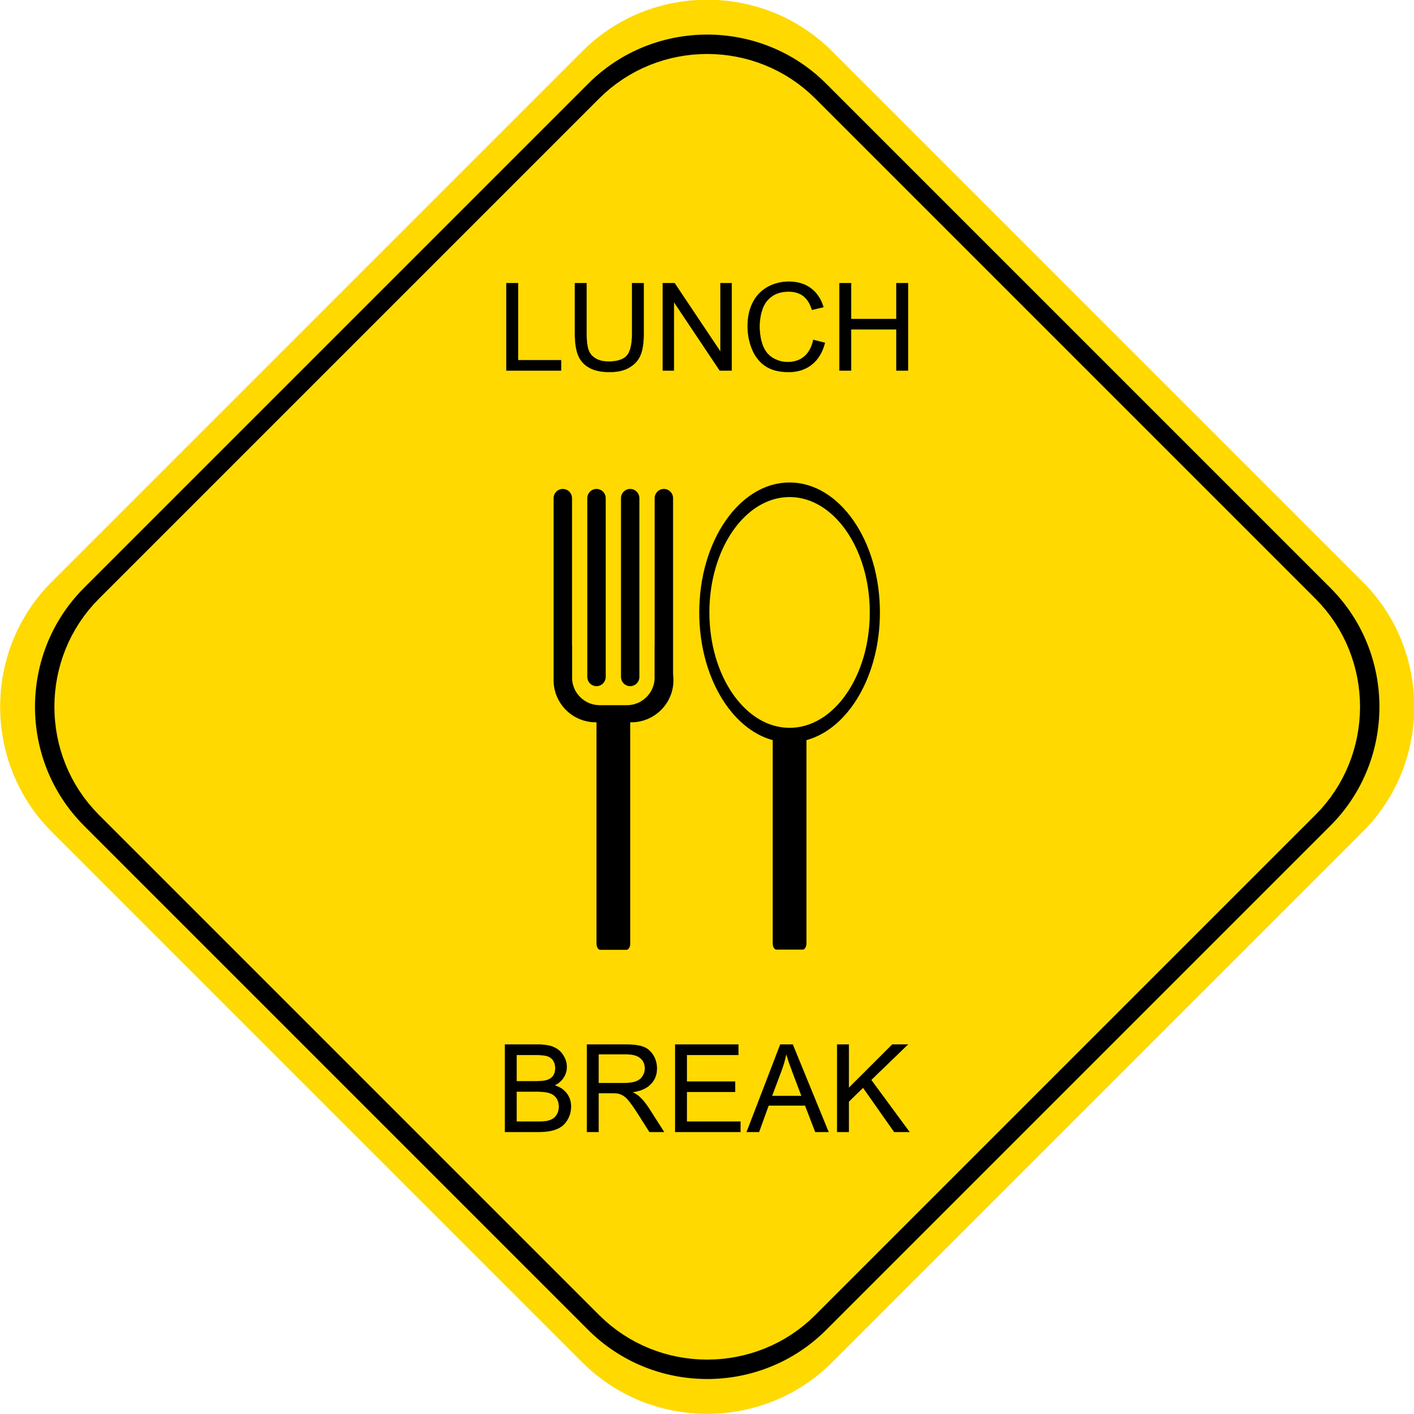 Lunch Break Images   Clipart Panda   Free Clipart Images